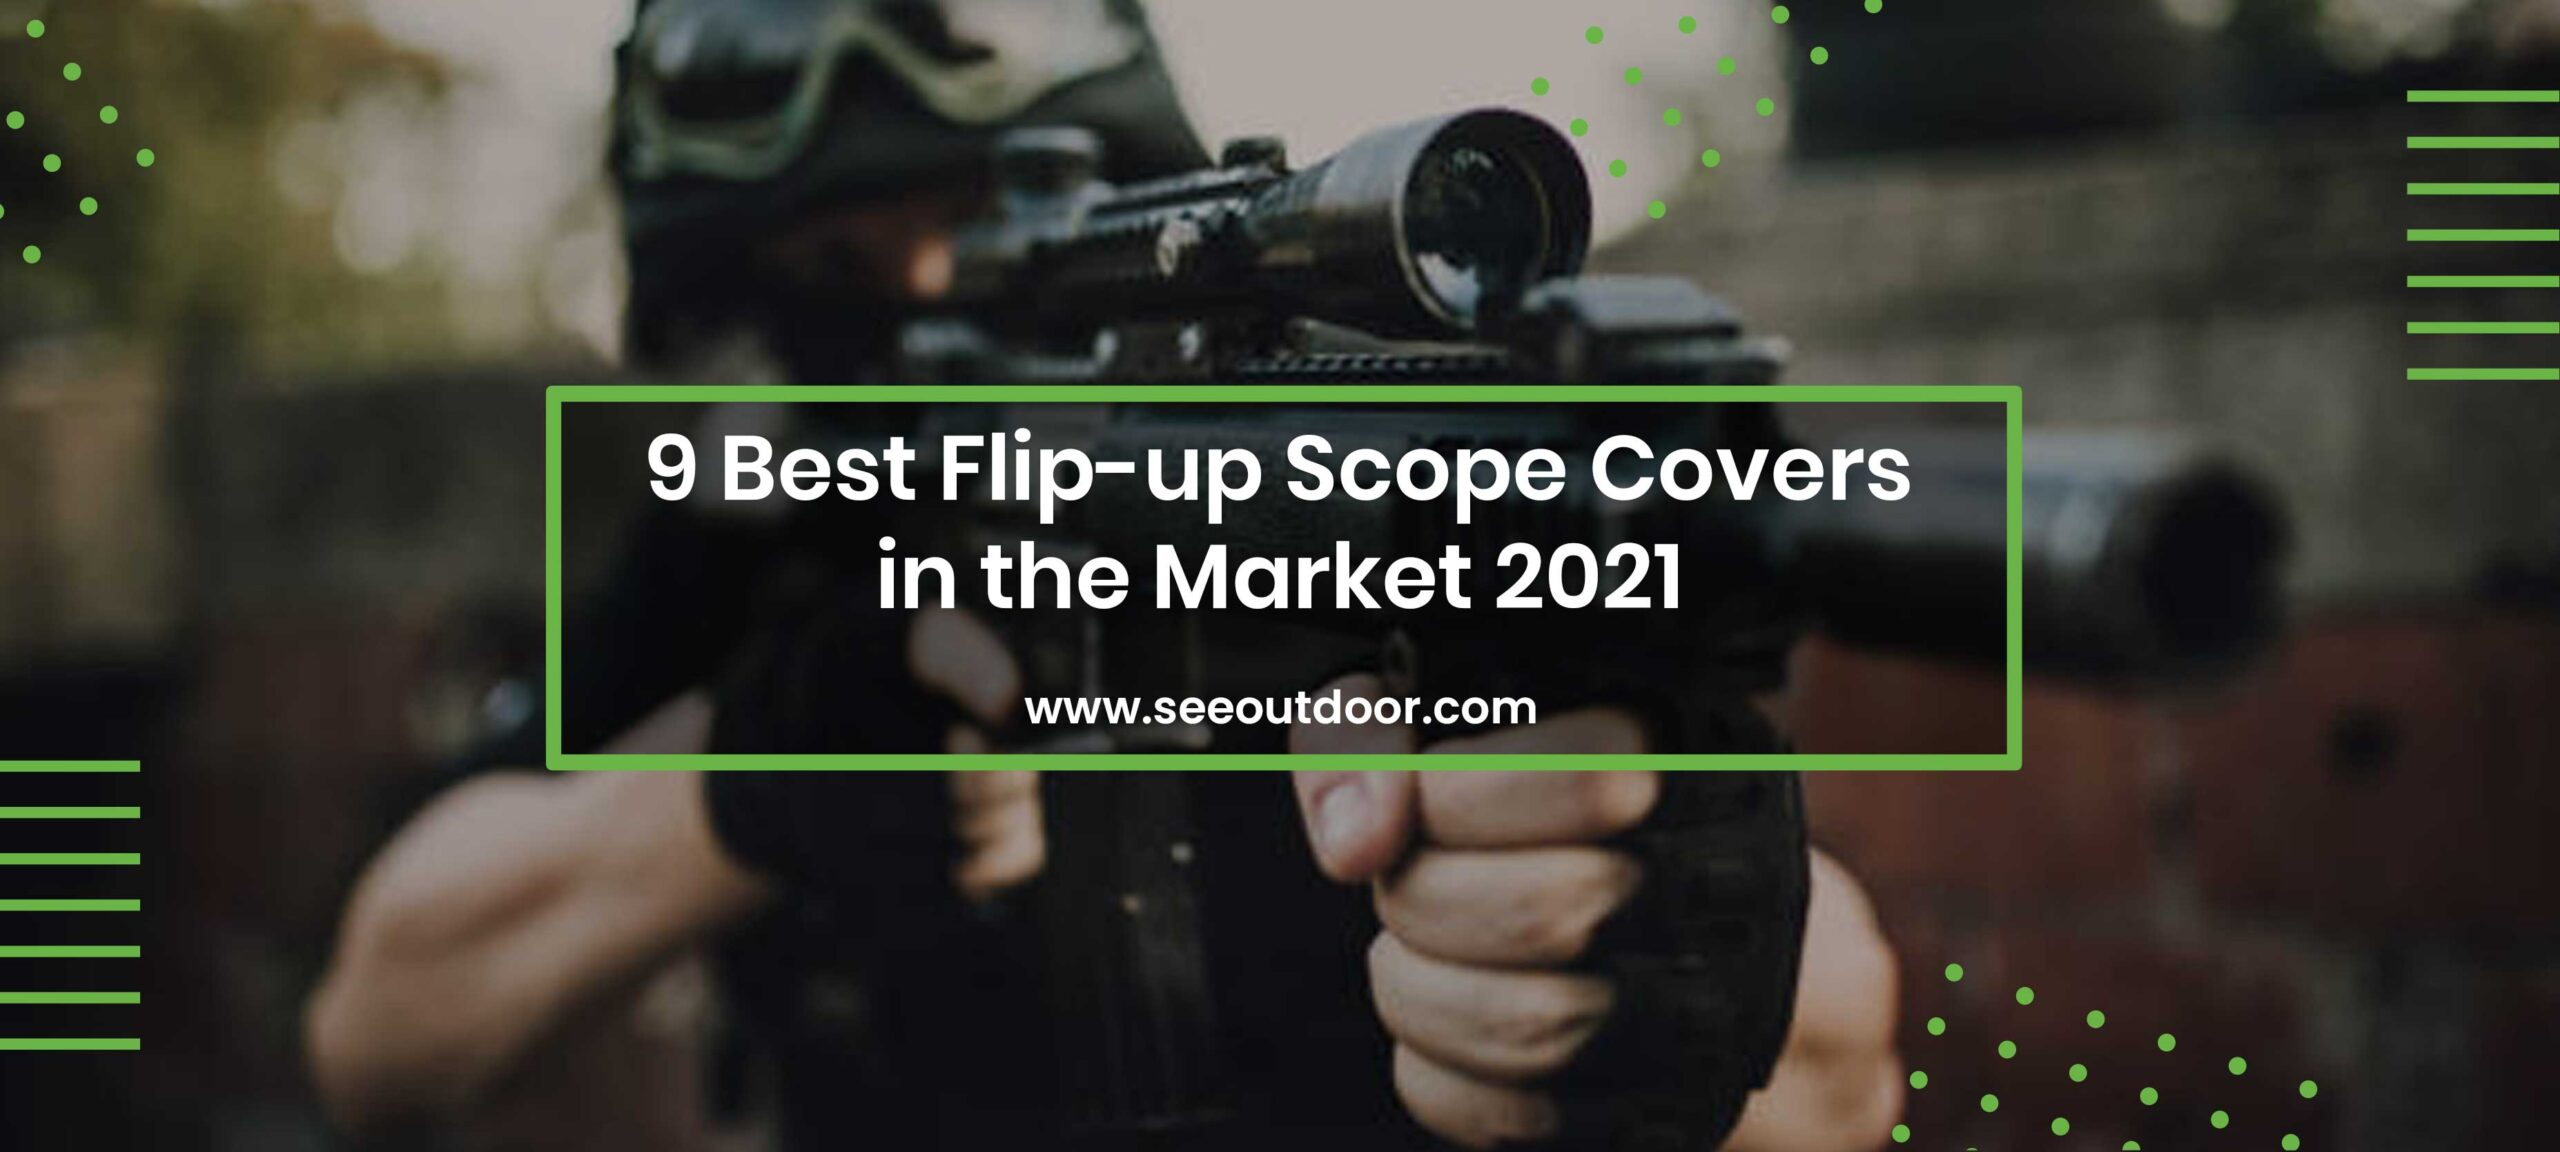 Flip-up Scope Covers